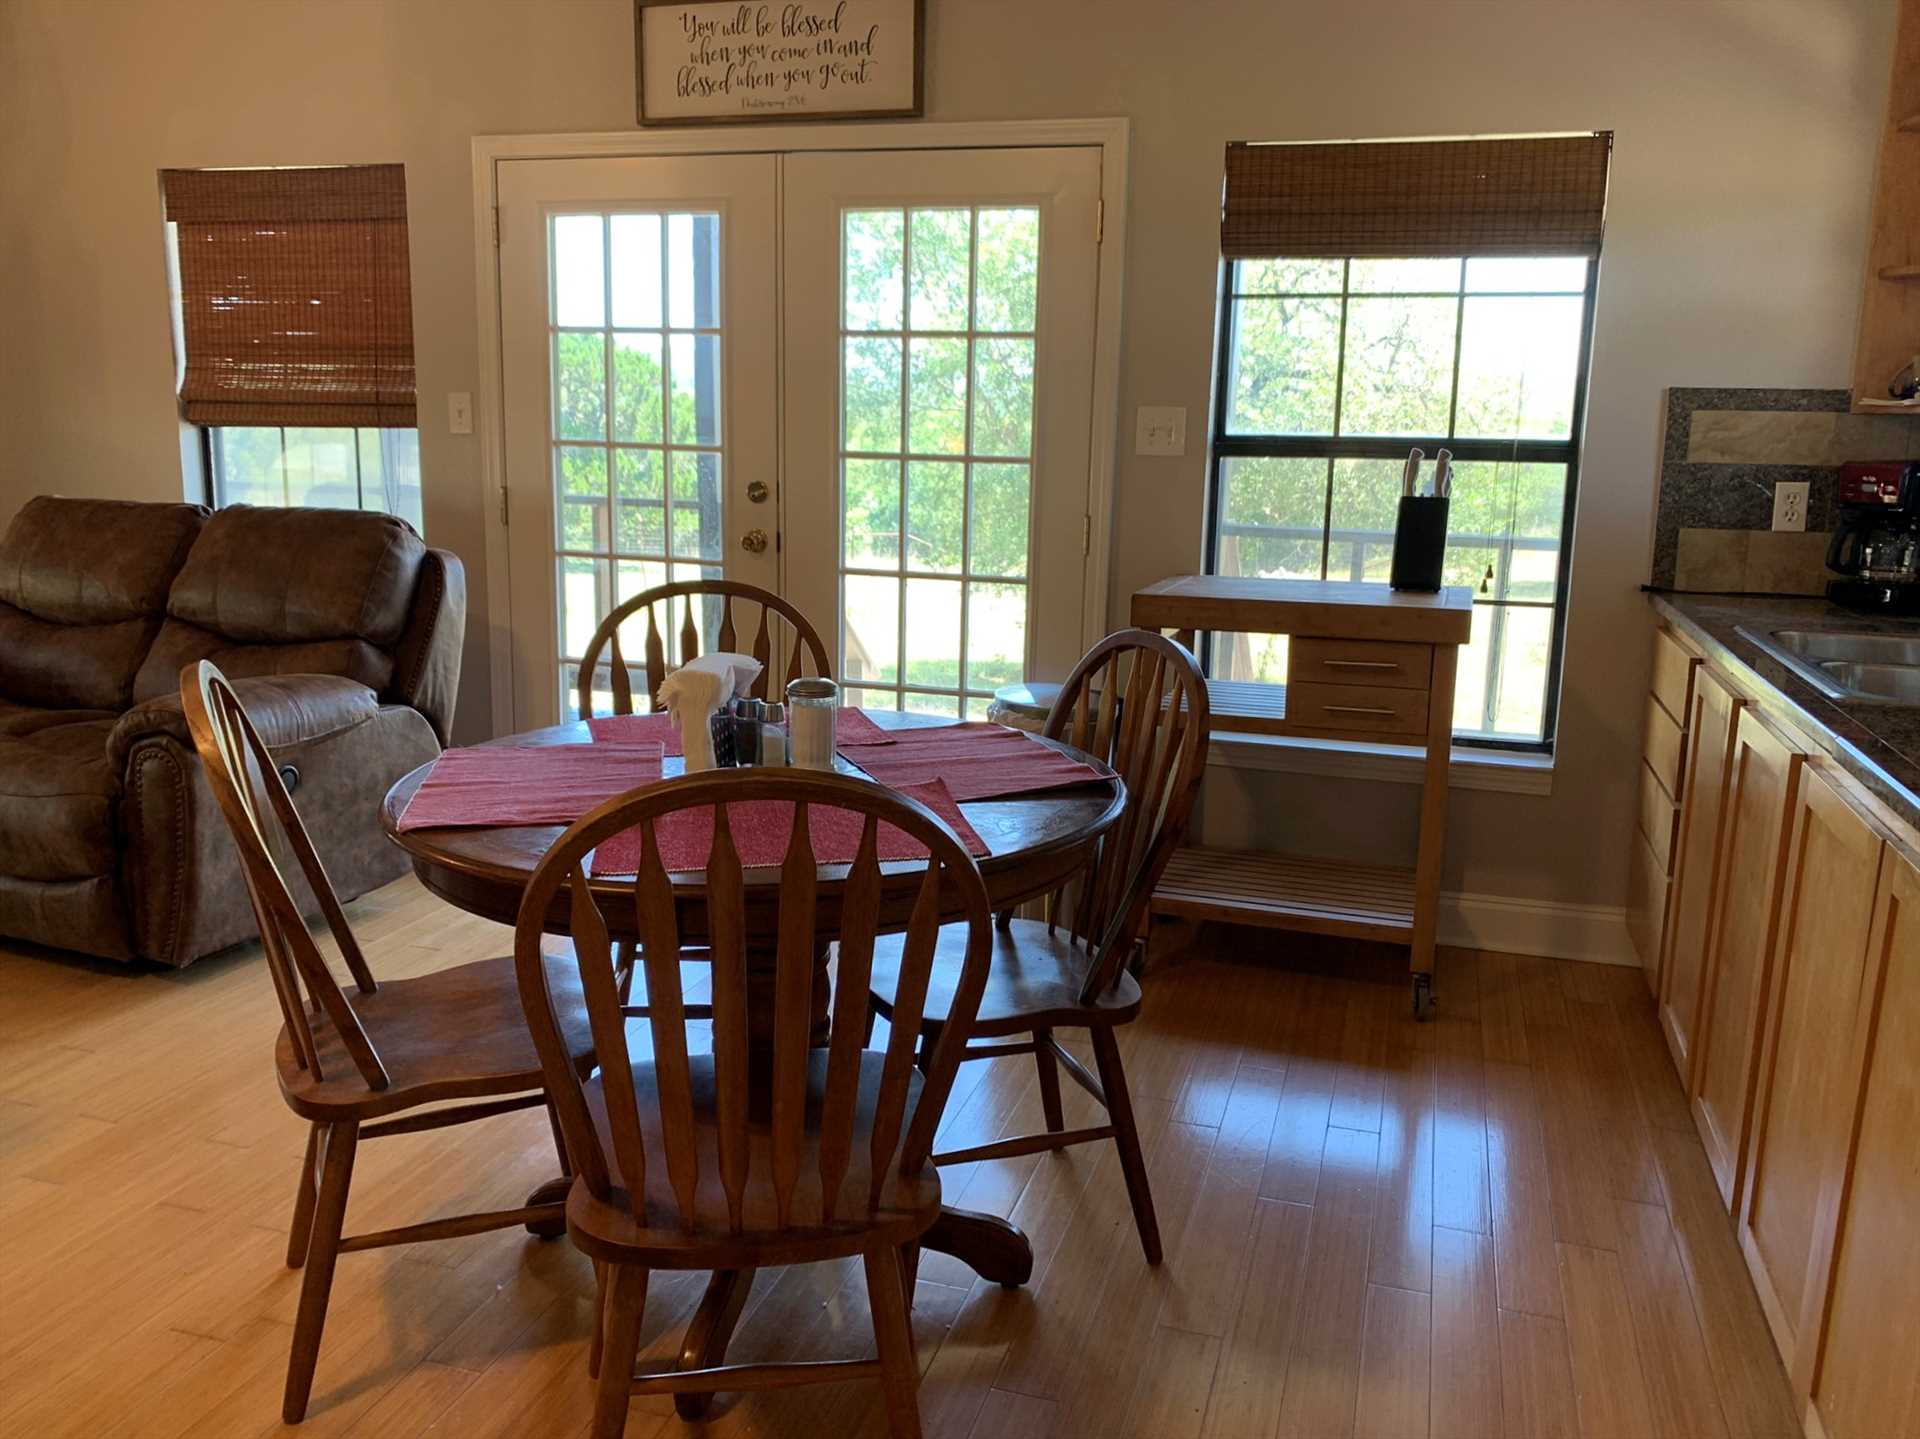 Seating up to four, the dining room table is positioned right by windows and French doors for a beautiful view of the great outdoors.